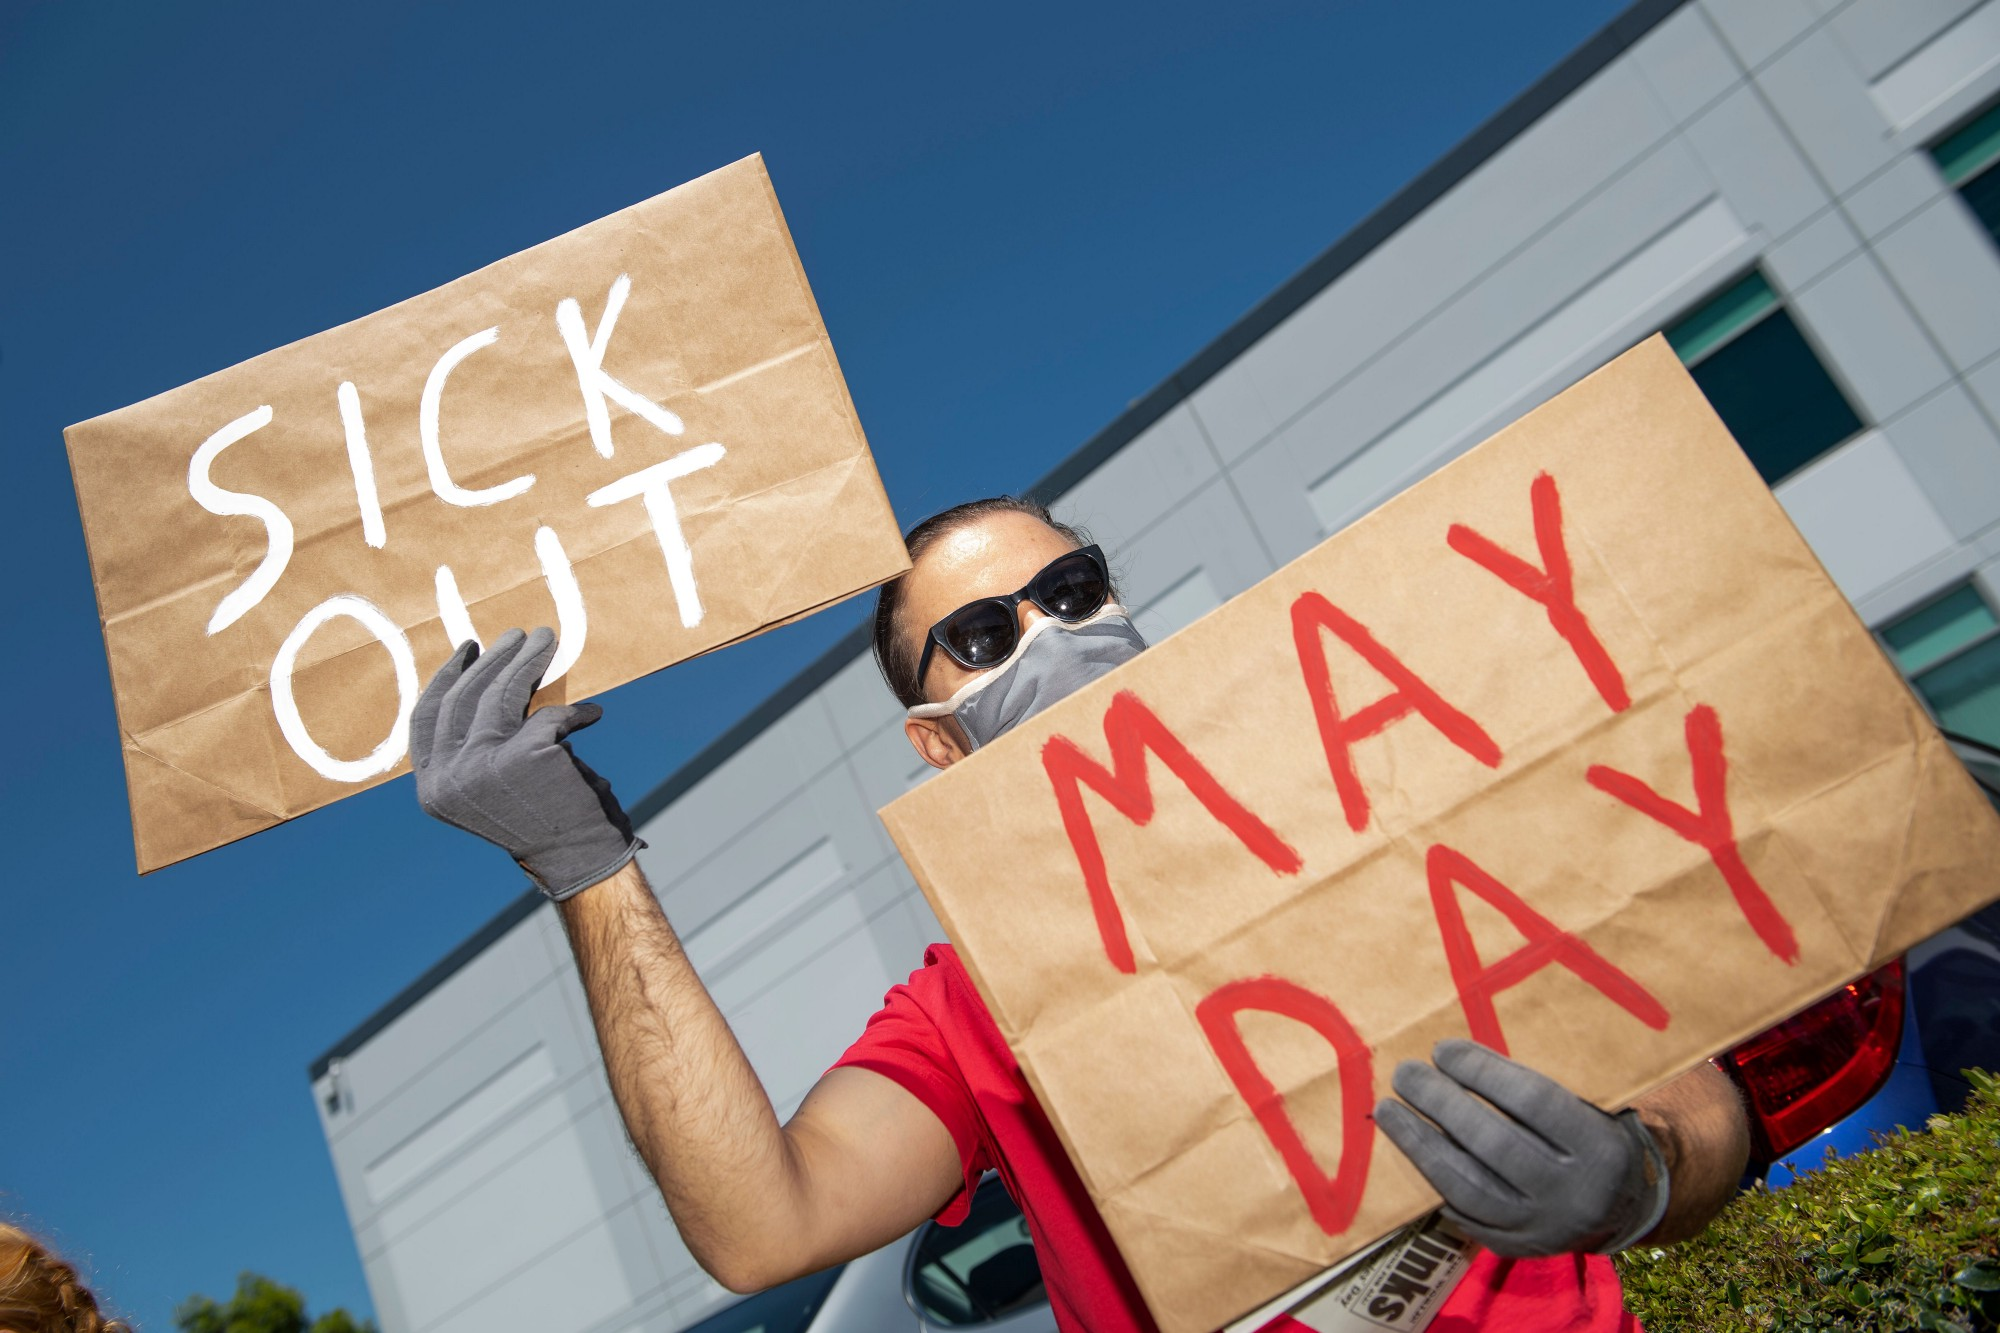 Workers protest against the failure from employers to provide adequate protections in the Amazon delivery hub workplace.